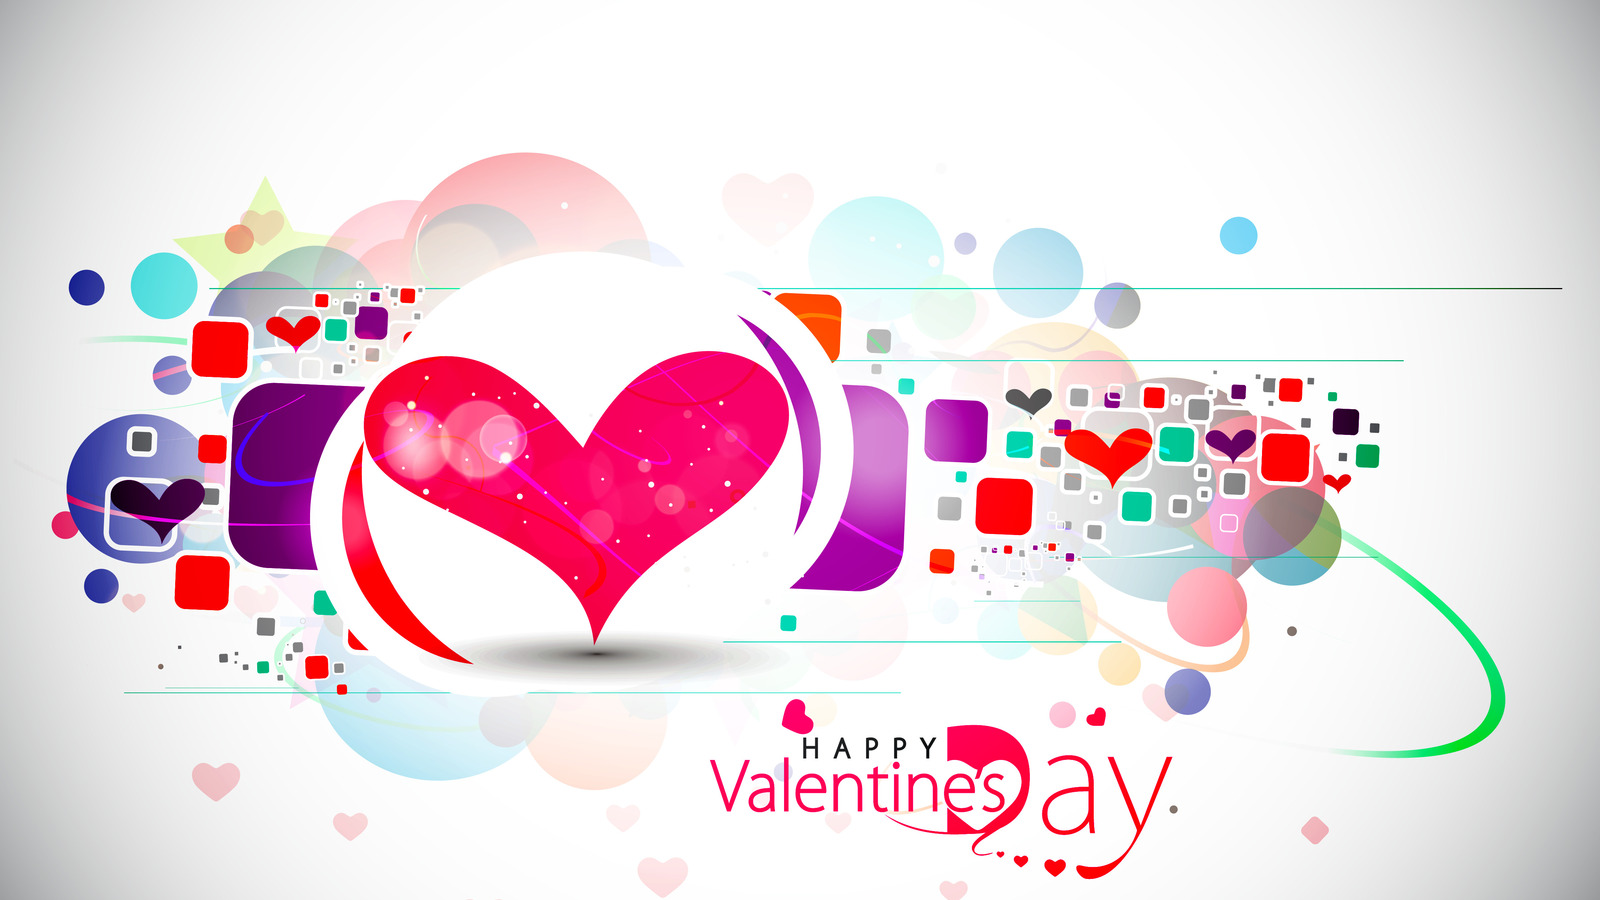 Valentine hd wallpapers